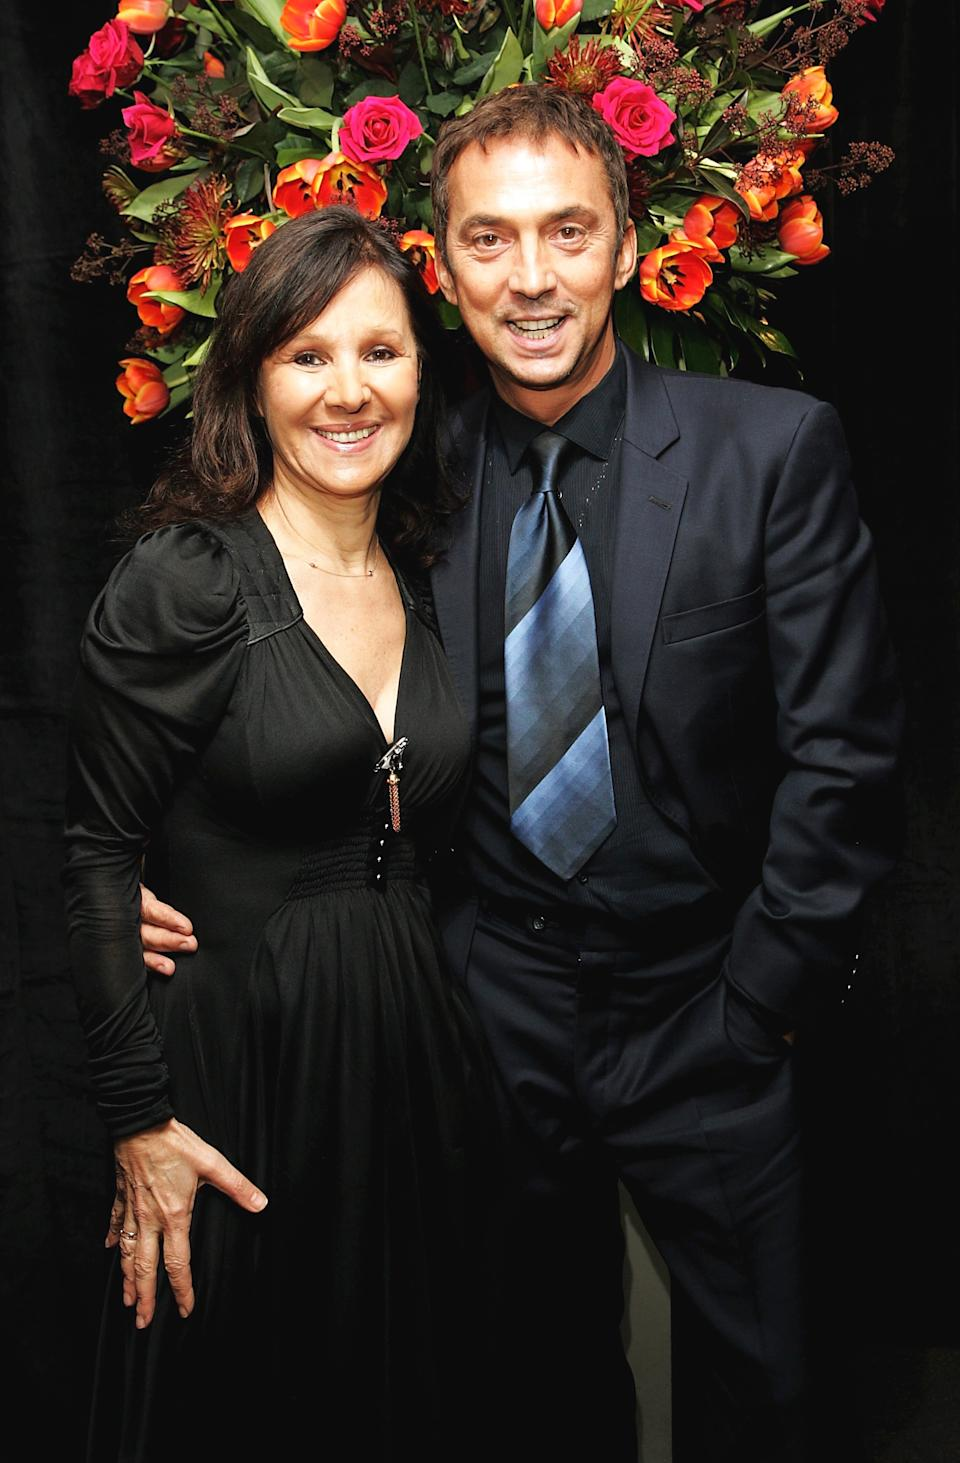 LONDON - JANUARY 21:  (UK TABLOID NEWSPAPERS OUT) 'Strictly Come Dancing' judges Bruno Tonioli and Arlene Phillips arrive at the after party following the UK premiere of